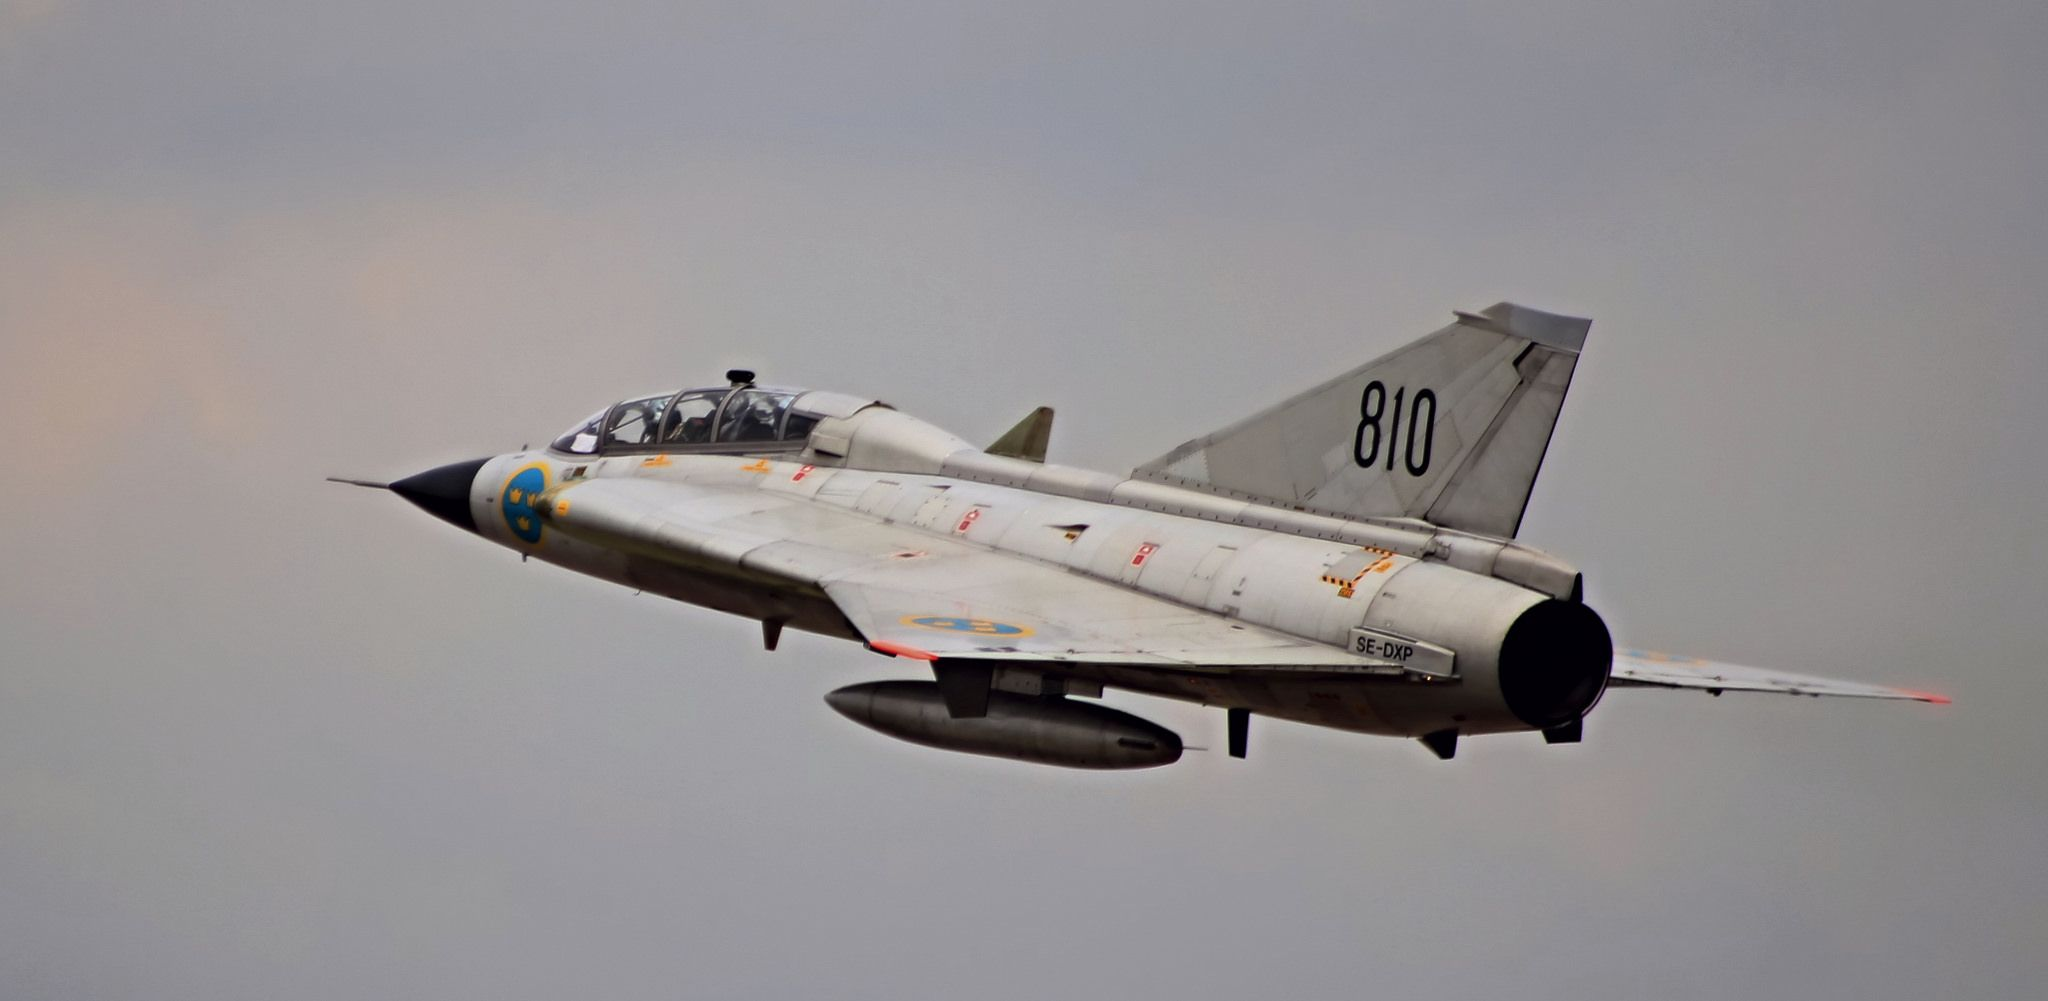 The Draken was not retired until 2005 by Austria. Due to cutbacks and high maintenance costs, the Draken was phased out of Swedish service in December 1998, replaced by the Saab 37 Viggen.